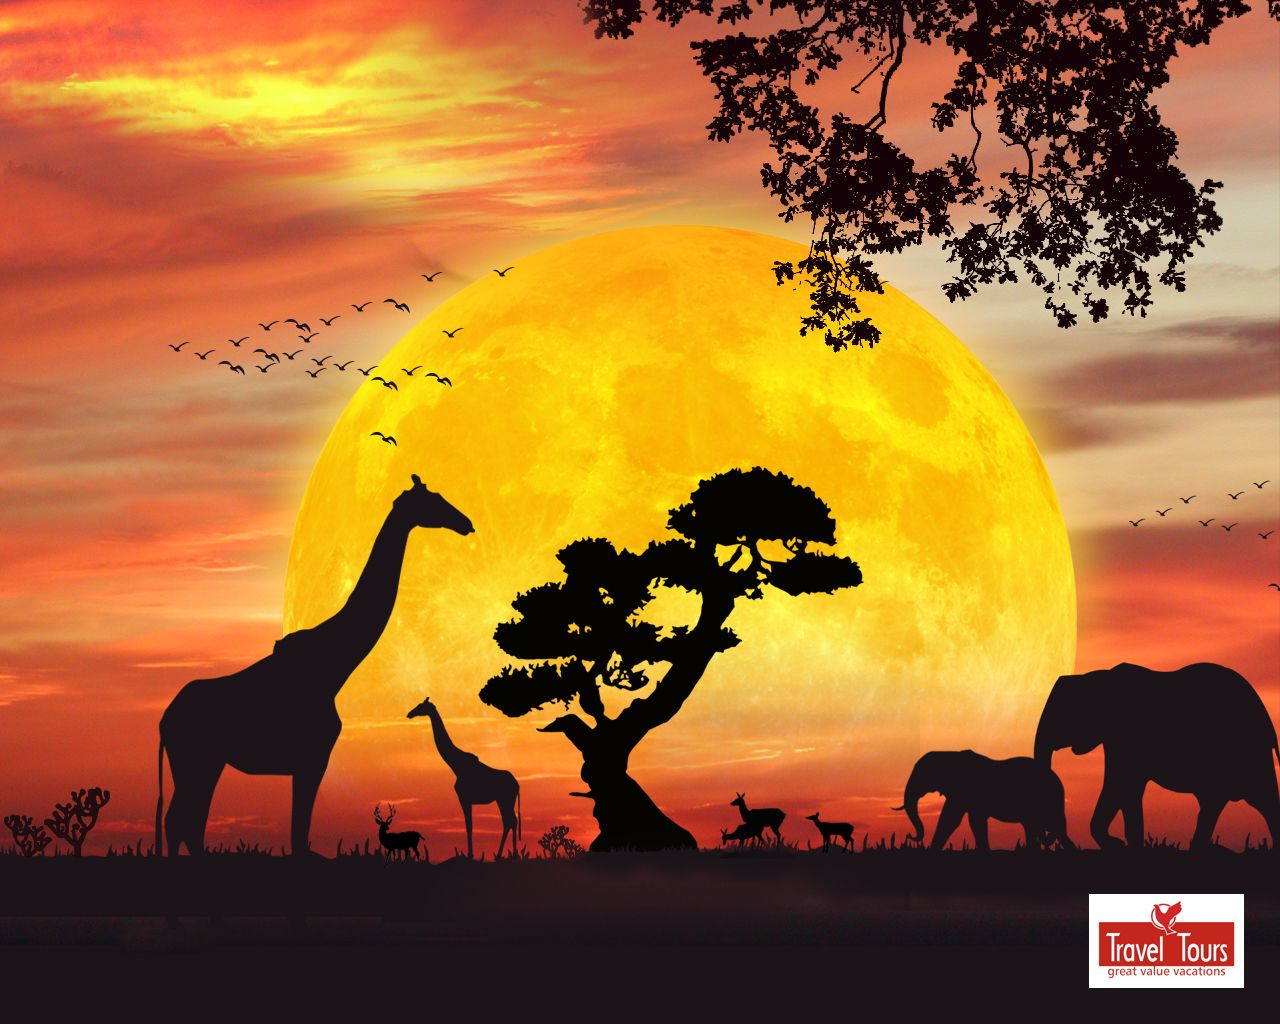 Free images safari google. Sunset clipart sunset africa